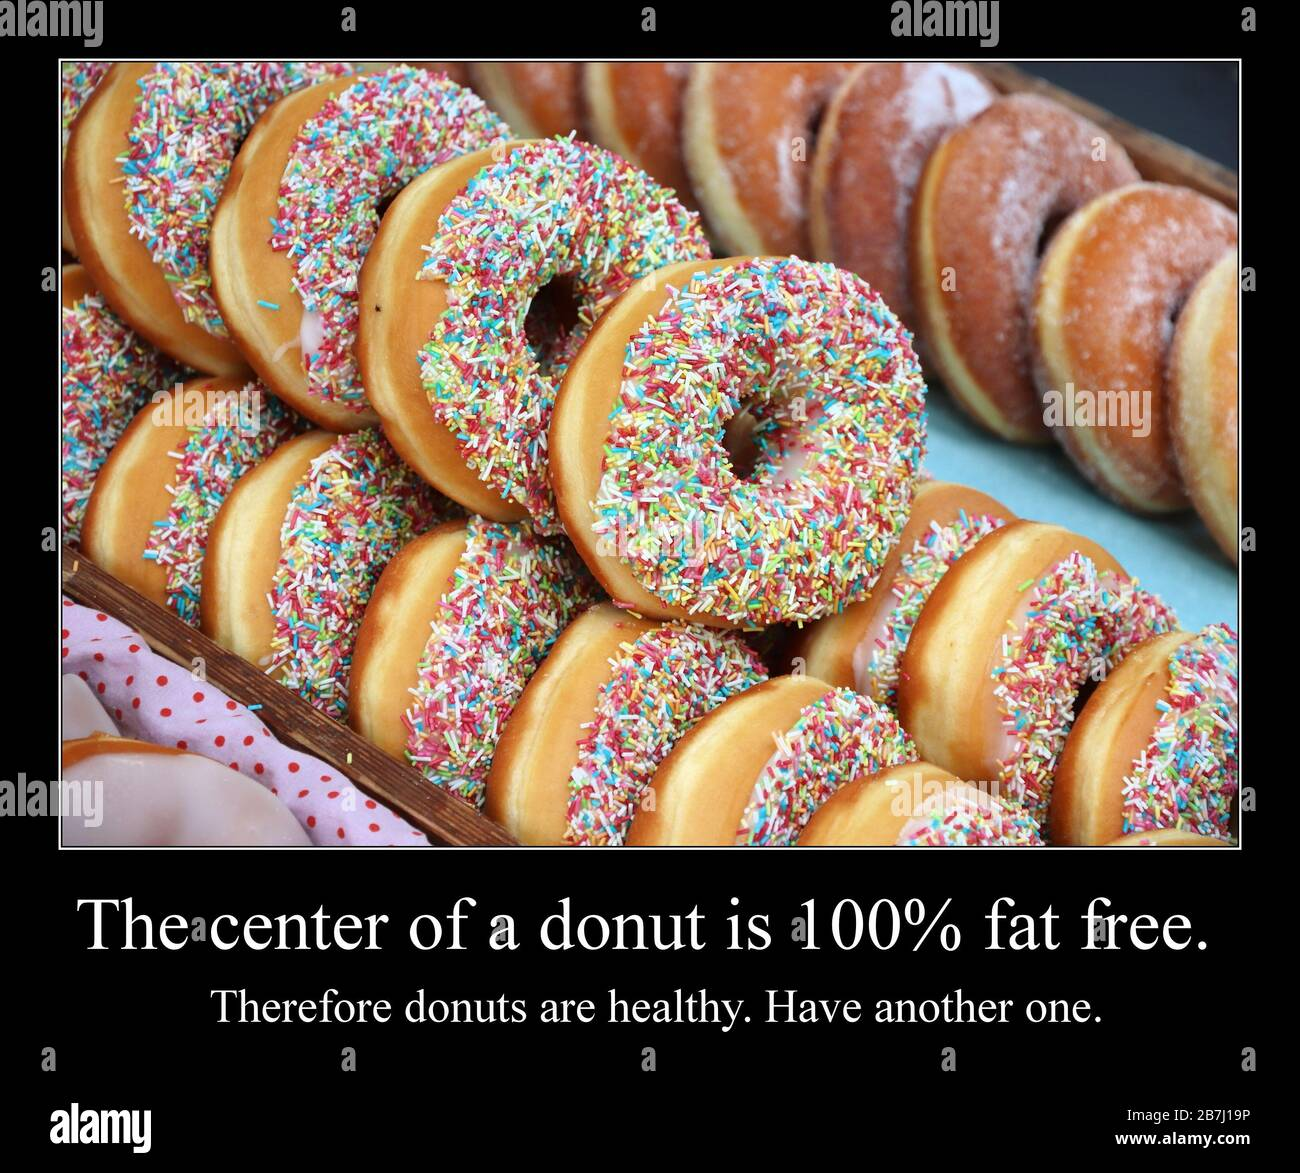 Funny Meme For Social Media Sharing Healthy Food And Donuts Meme Stock Photo Alamy